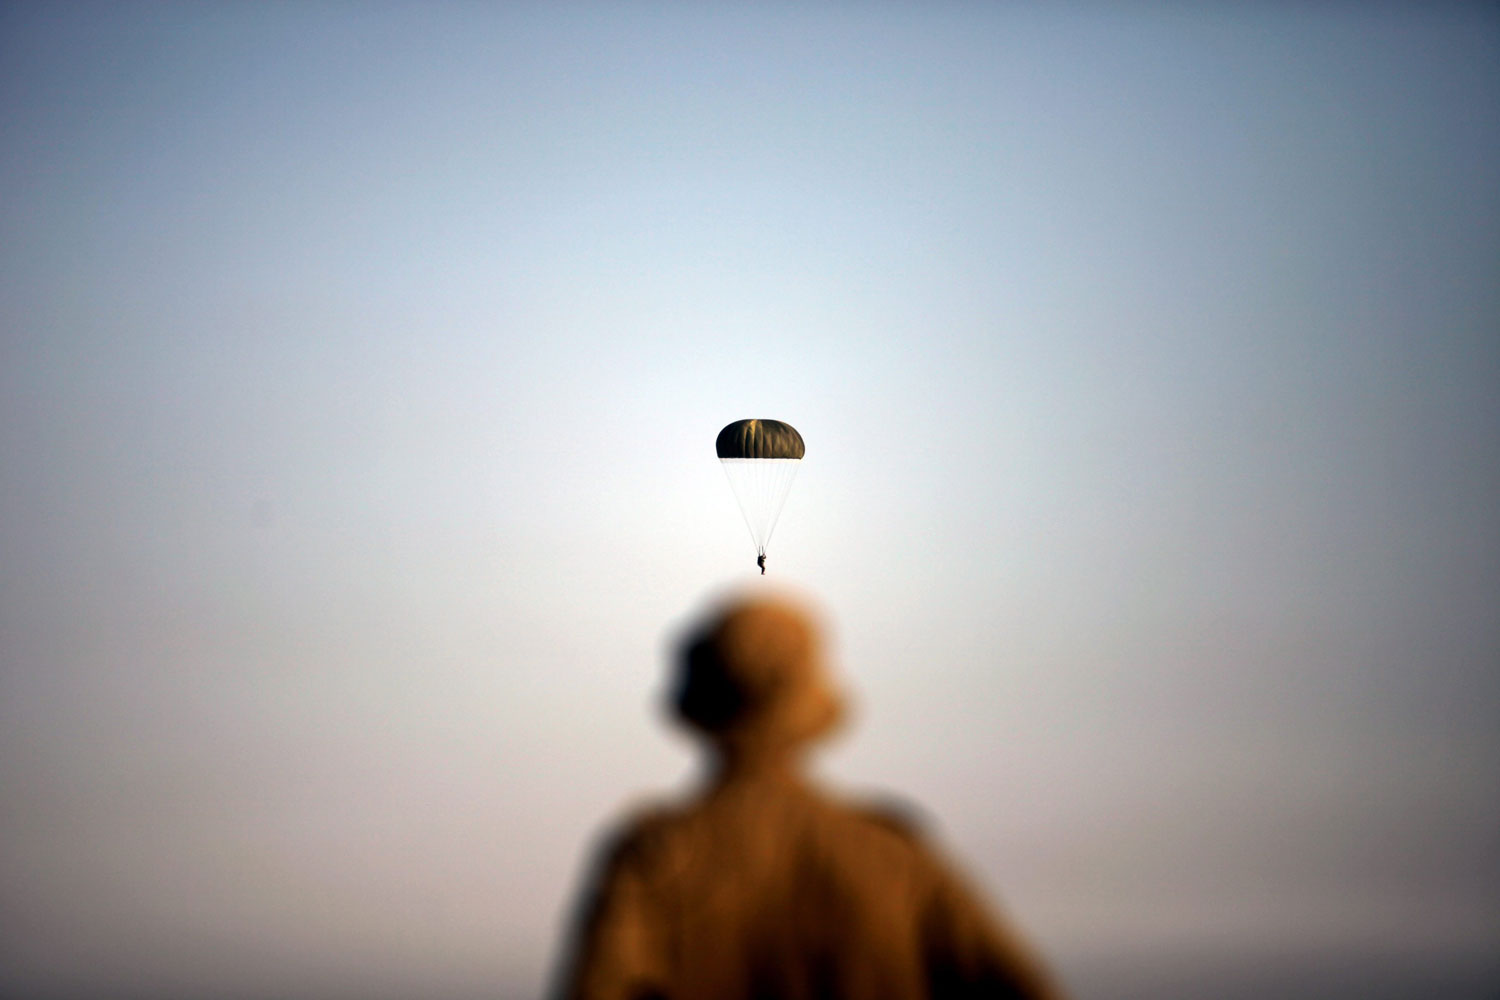 September 13, 2011. Israeli army paratroopers take part in a training jump in full battle gear over the Palmachim military base near Tel Aviv, Israel. Although the Paratroopers Brigade has had only one operational combat parachute drop ever, during the 1956 Sinai War, volunteers accepted into the elite unit undergo operational training jumps with all the equipment needed for battle.